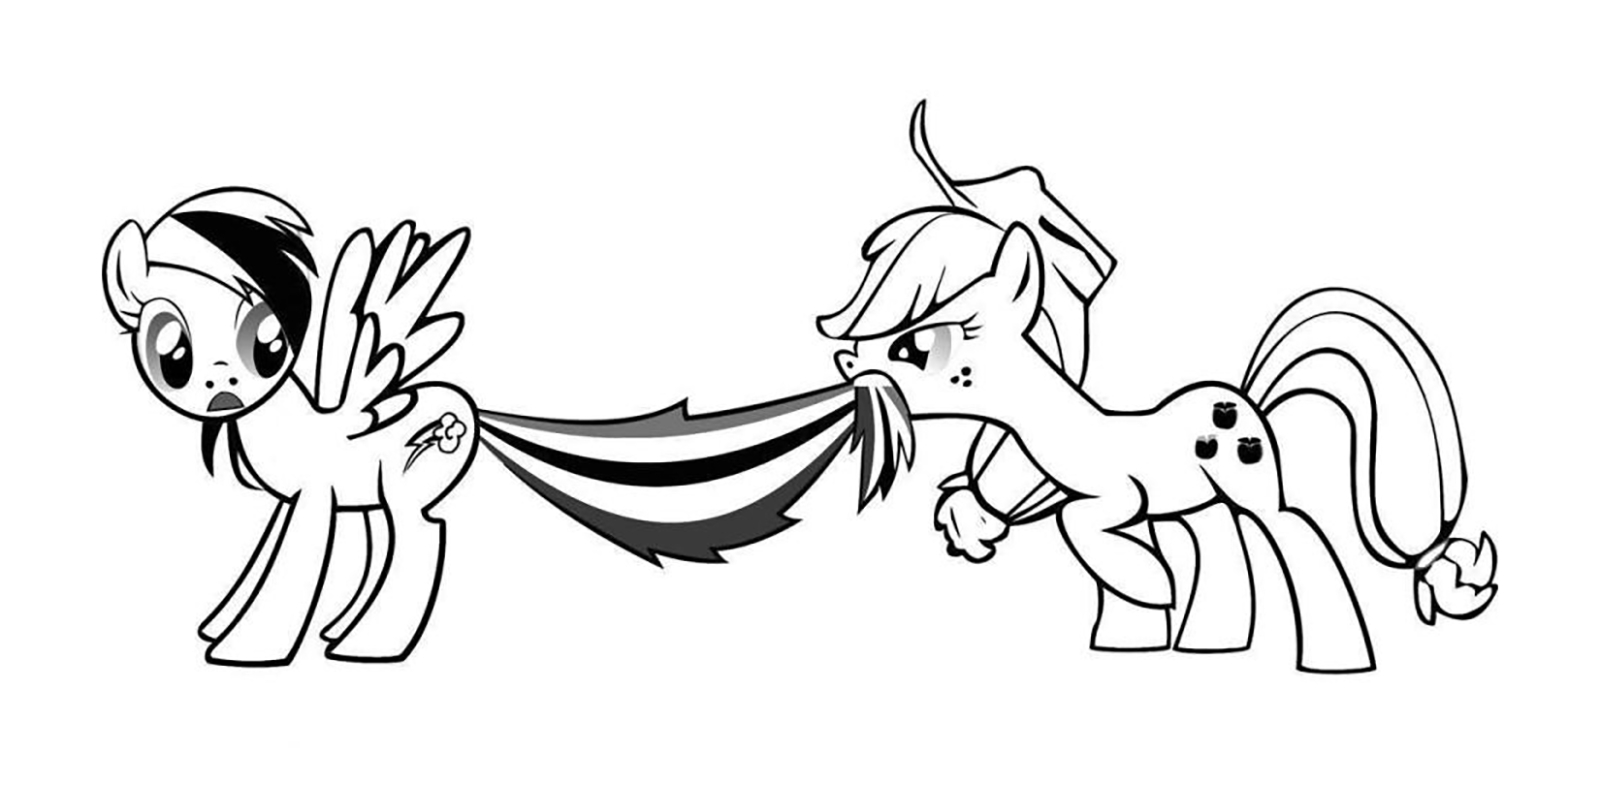 rainbow dash coloring pages - applejack pulls the tail of rainbow dash